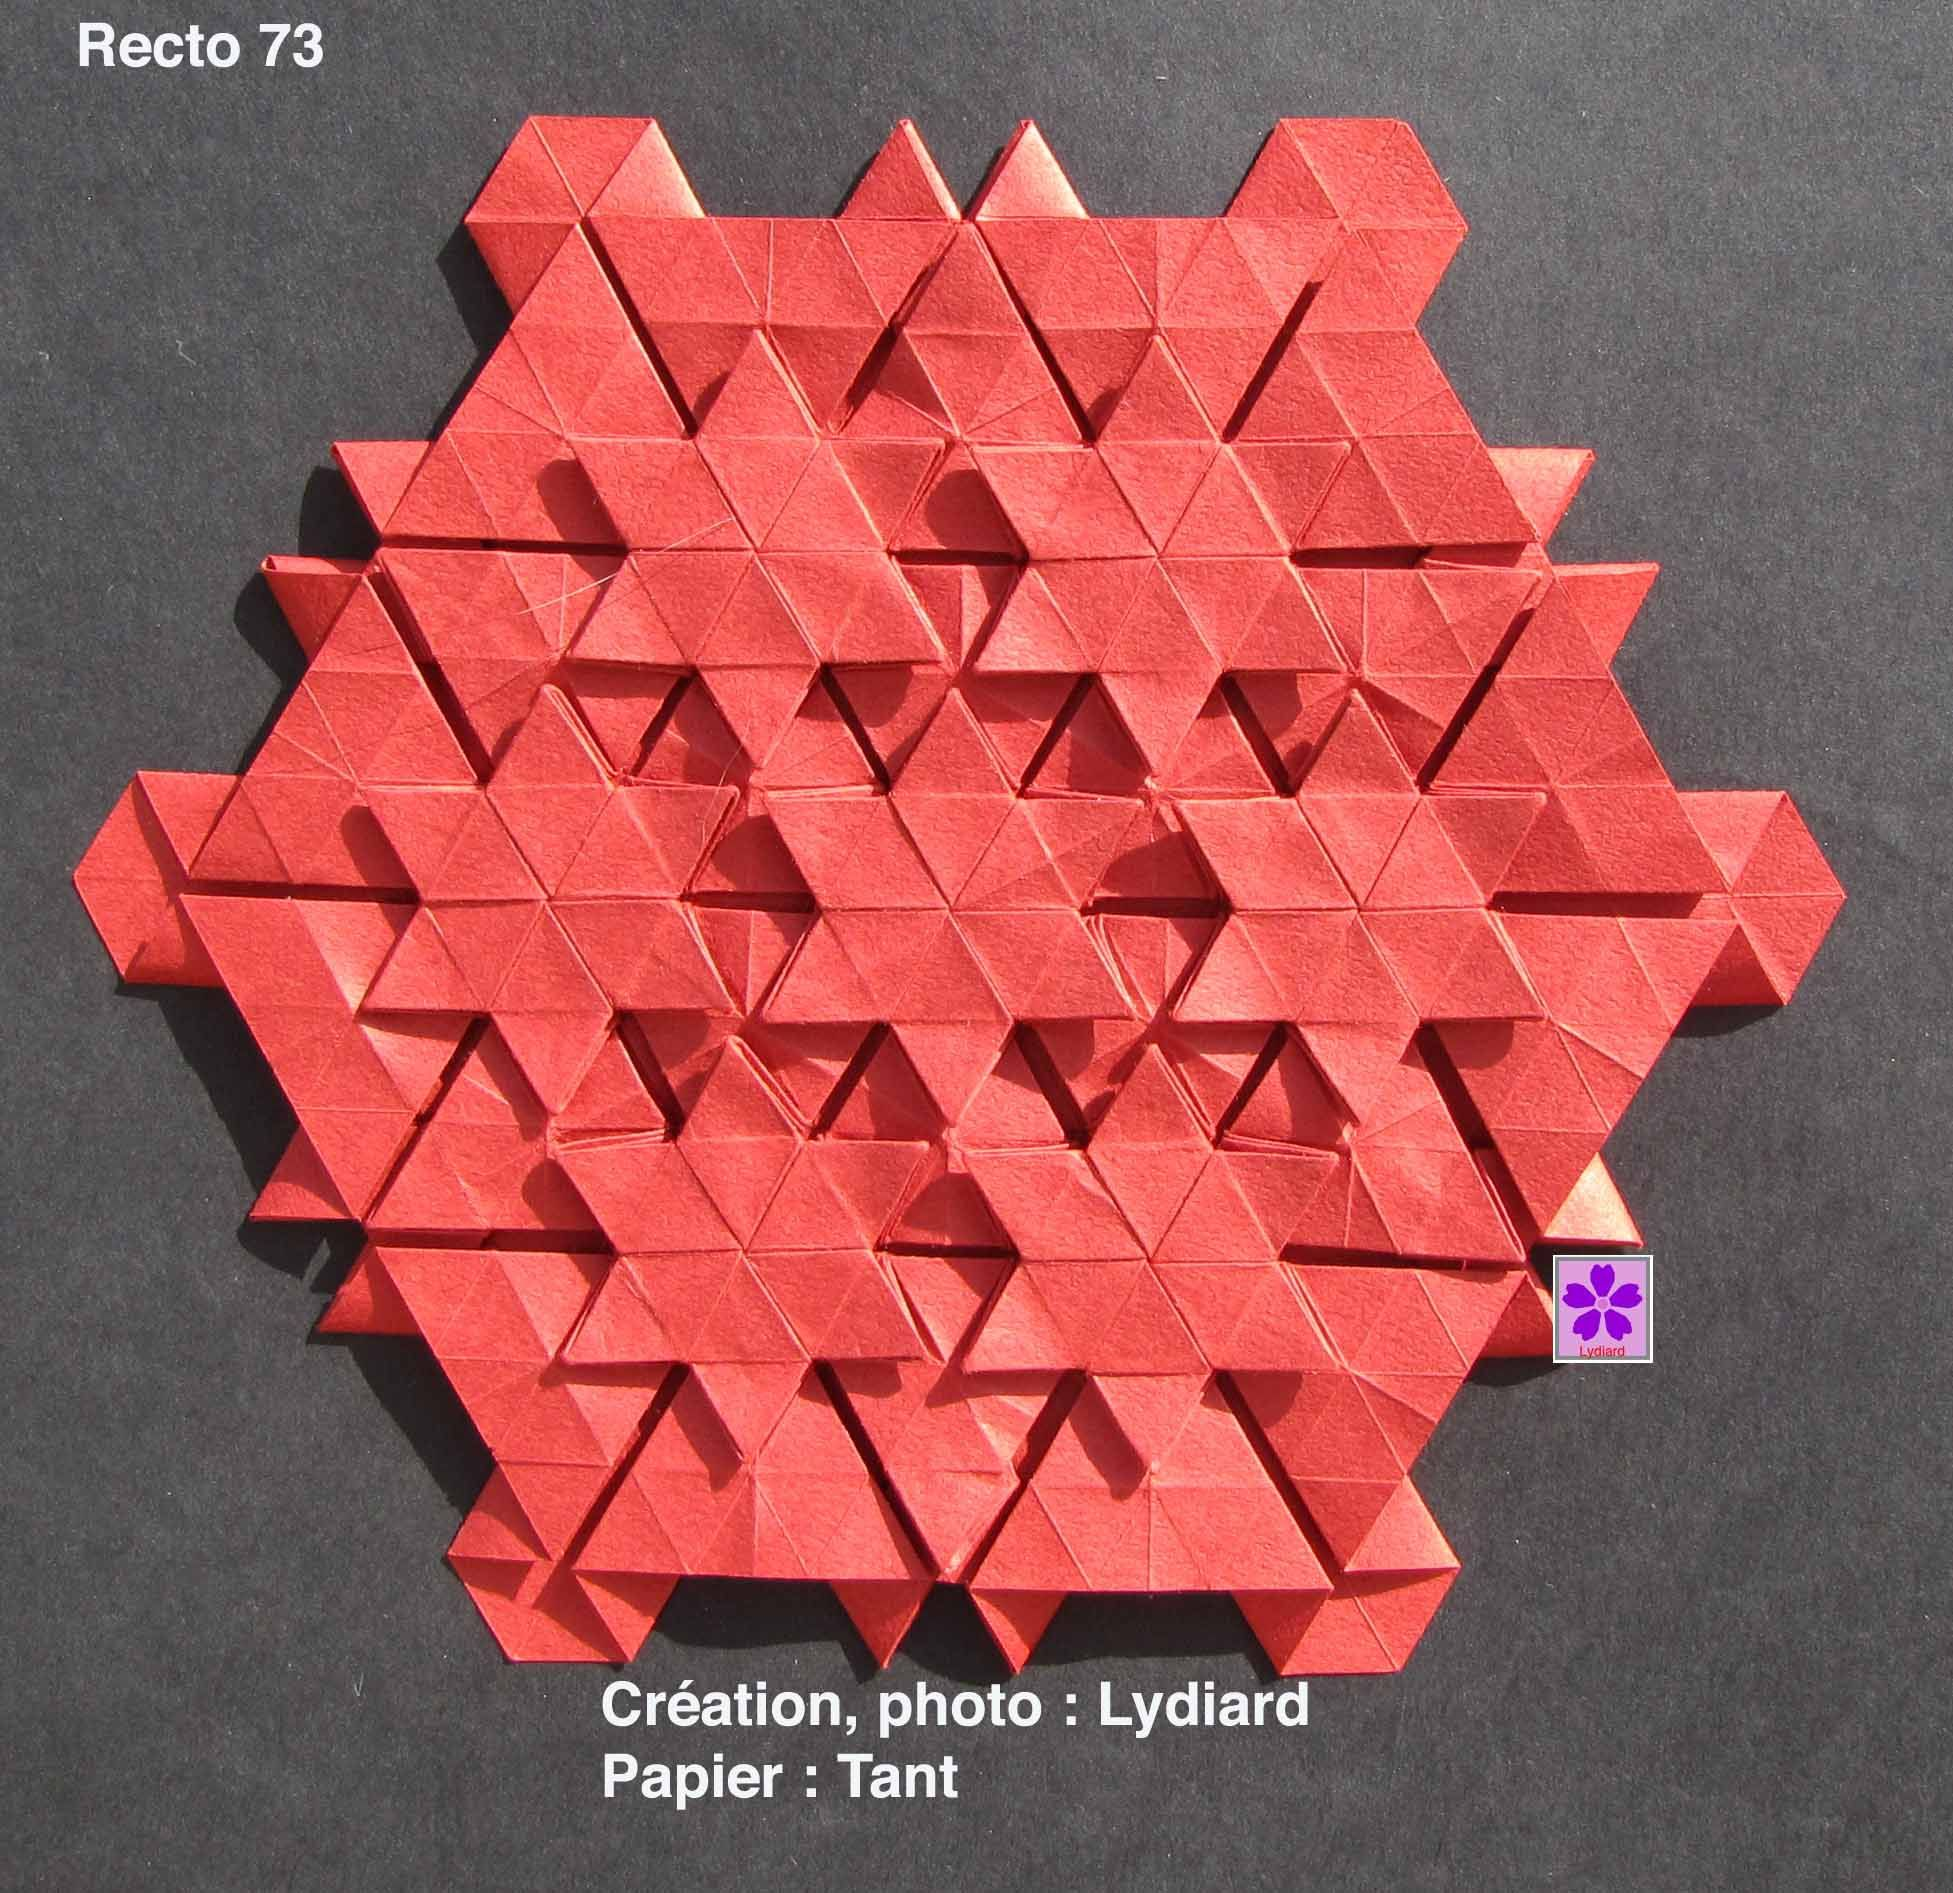 tessellation paper crafts and origami Pinterest